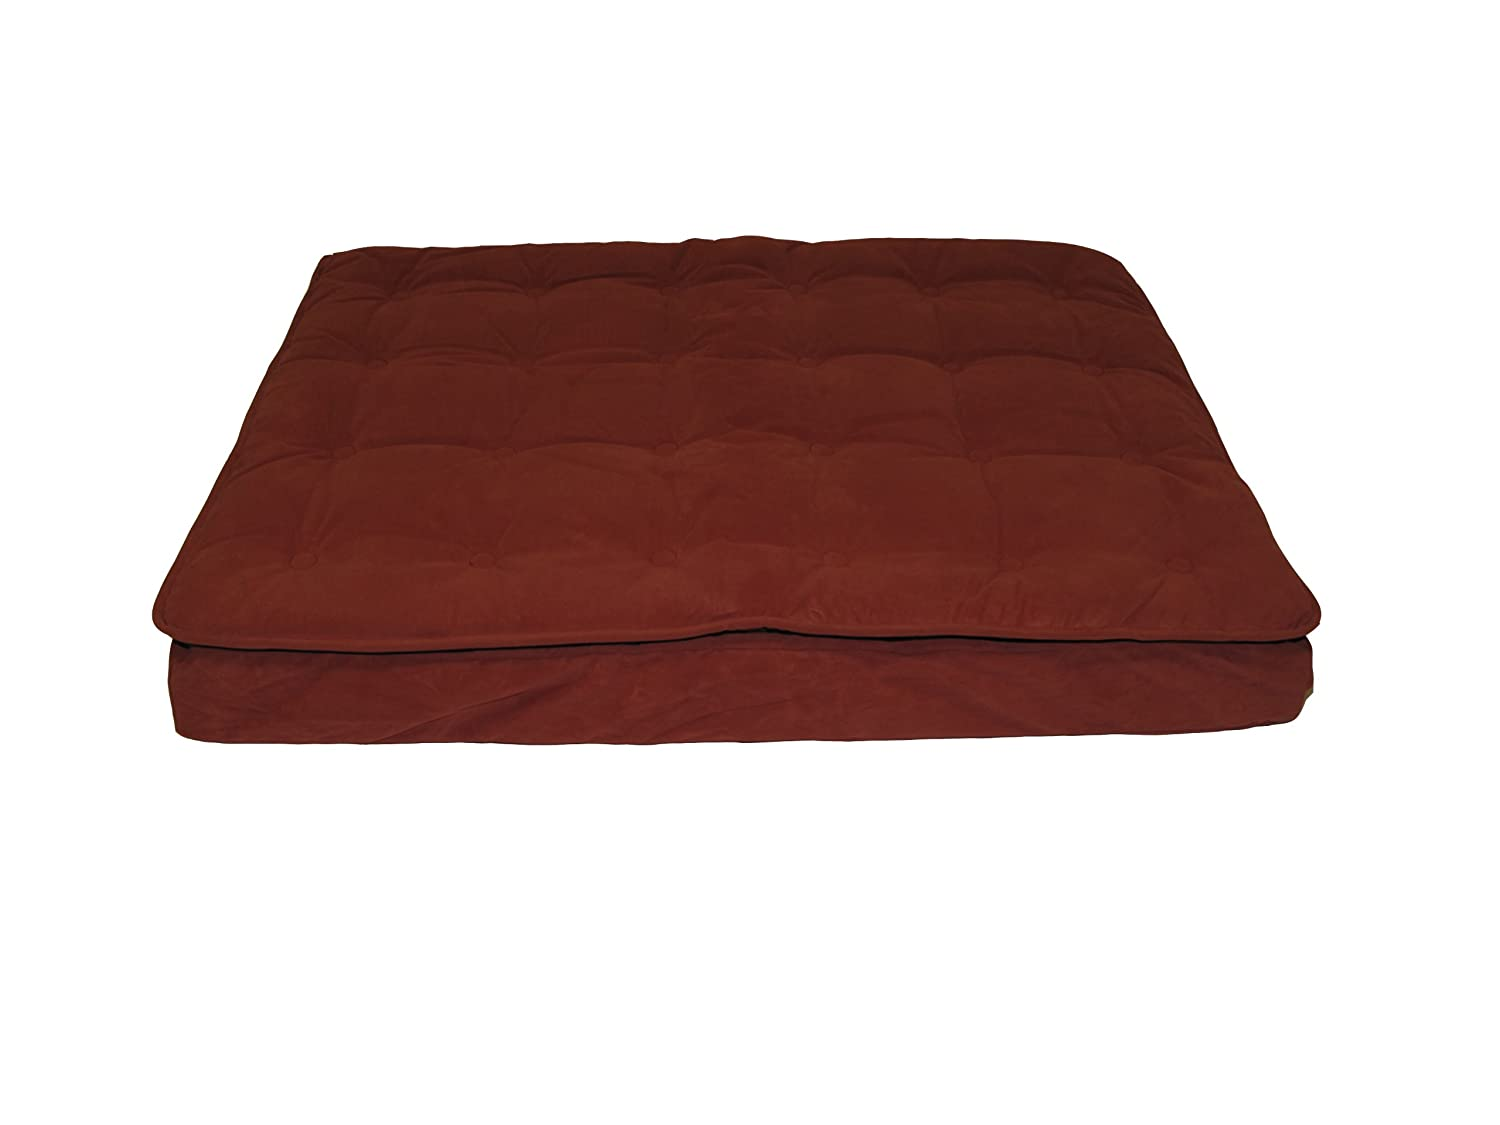 Earth Red 30 by 42 by 4 Earth Red 30 by 42 by 4 CPC Luxury Pillow Large Top Mattress Pet Bed, Earth Red